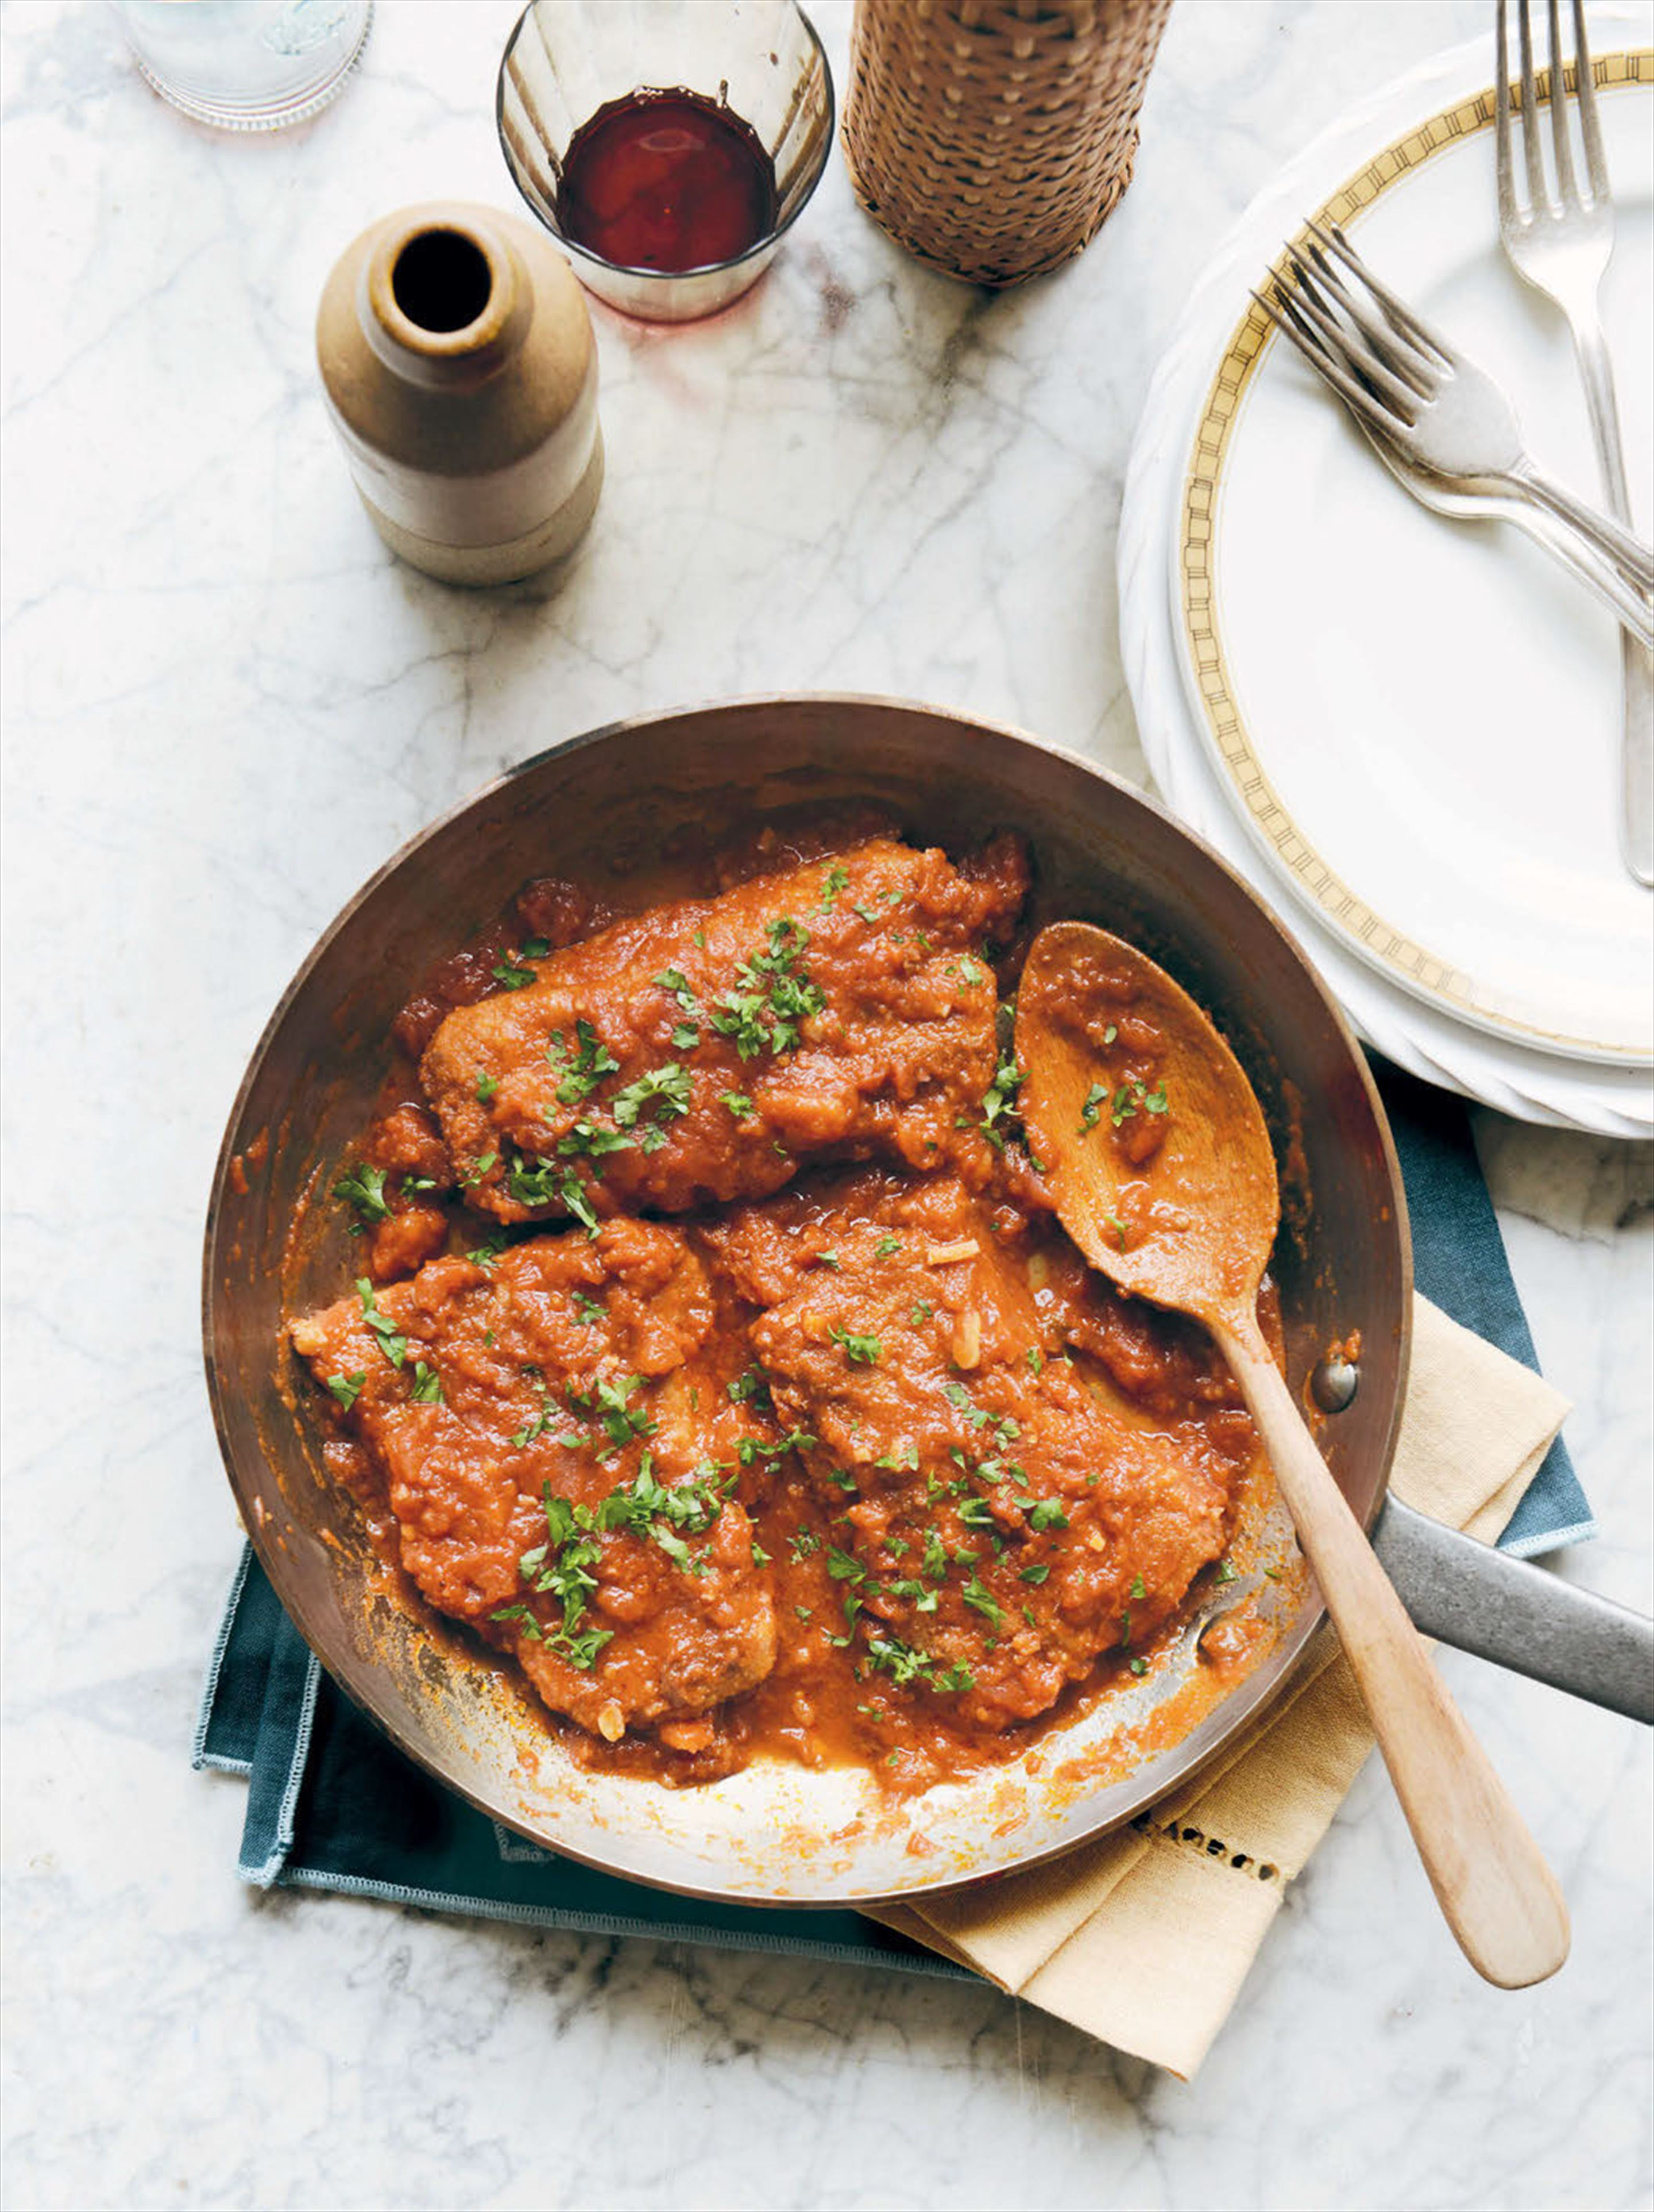 Crumbed beef in tomato sauce